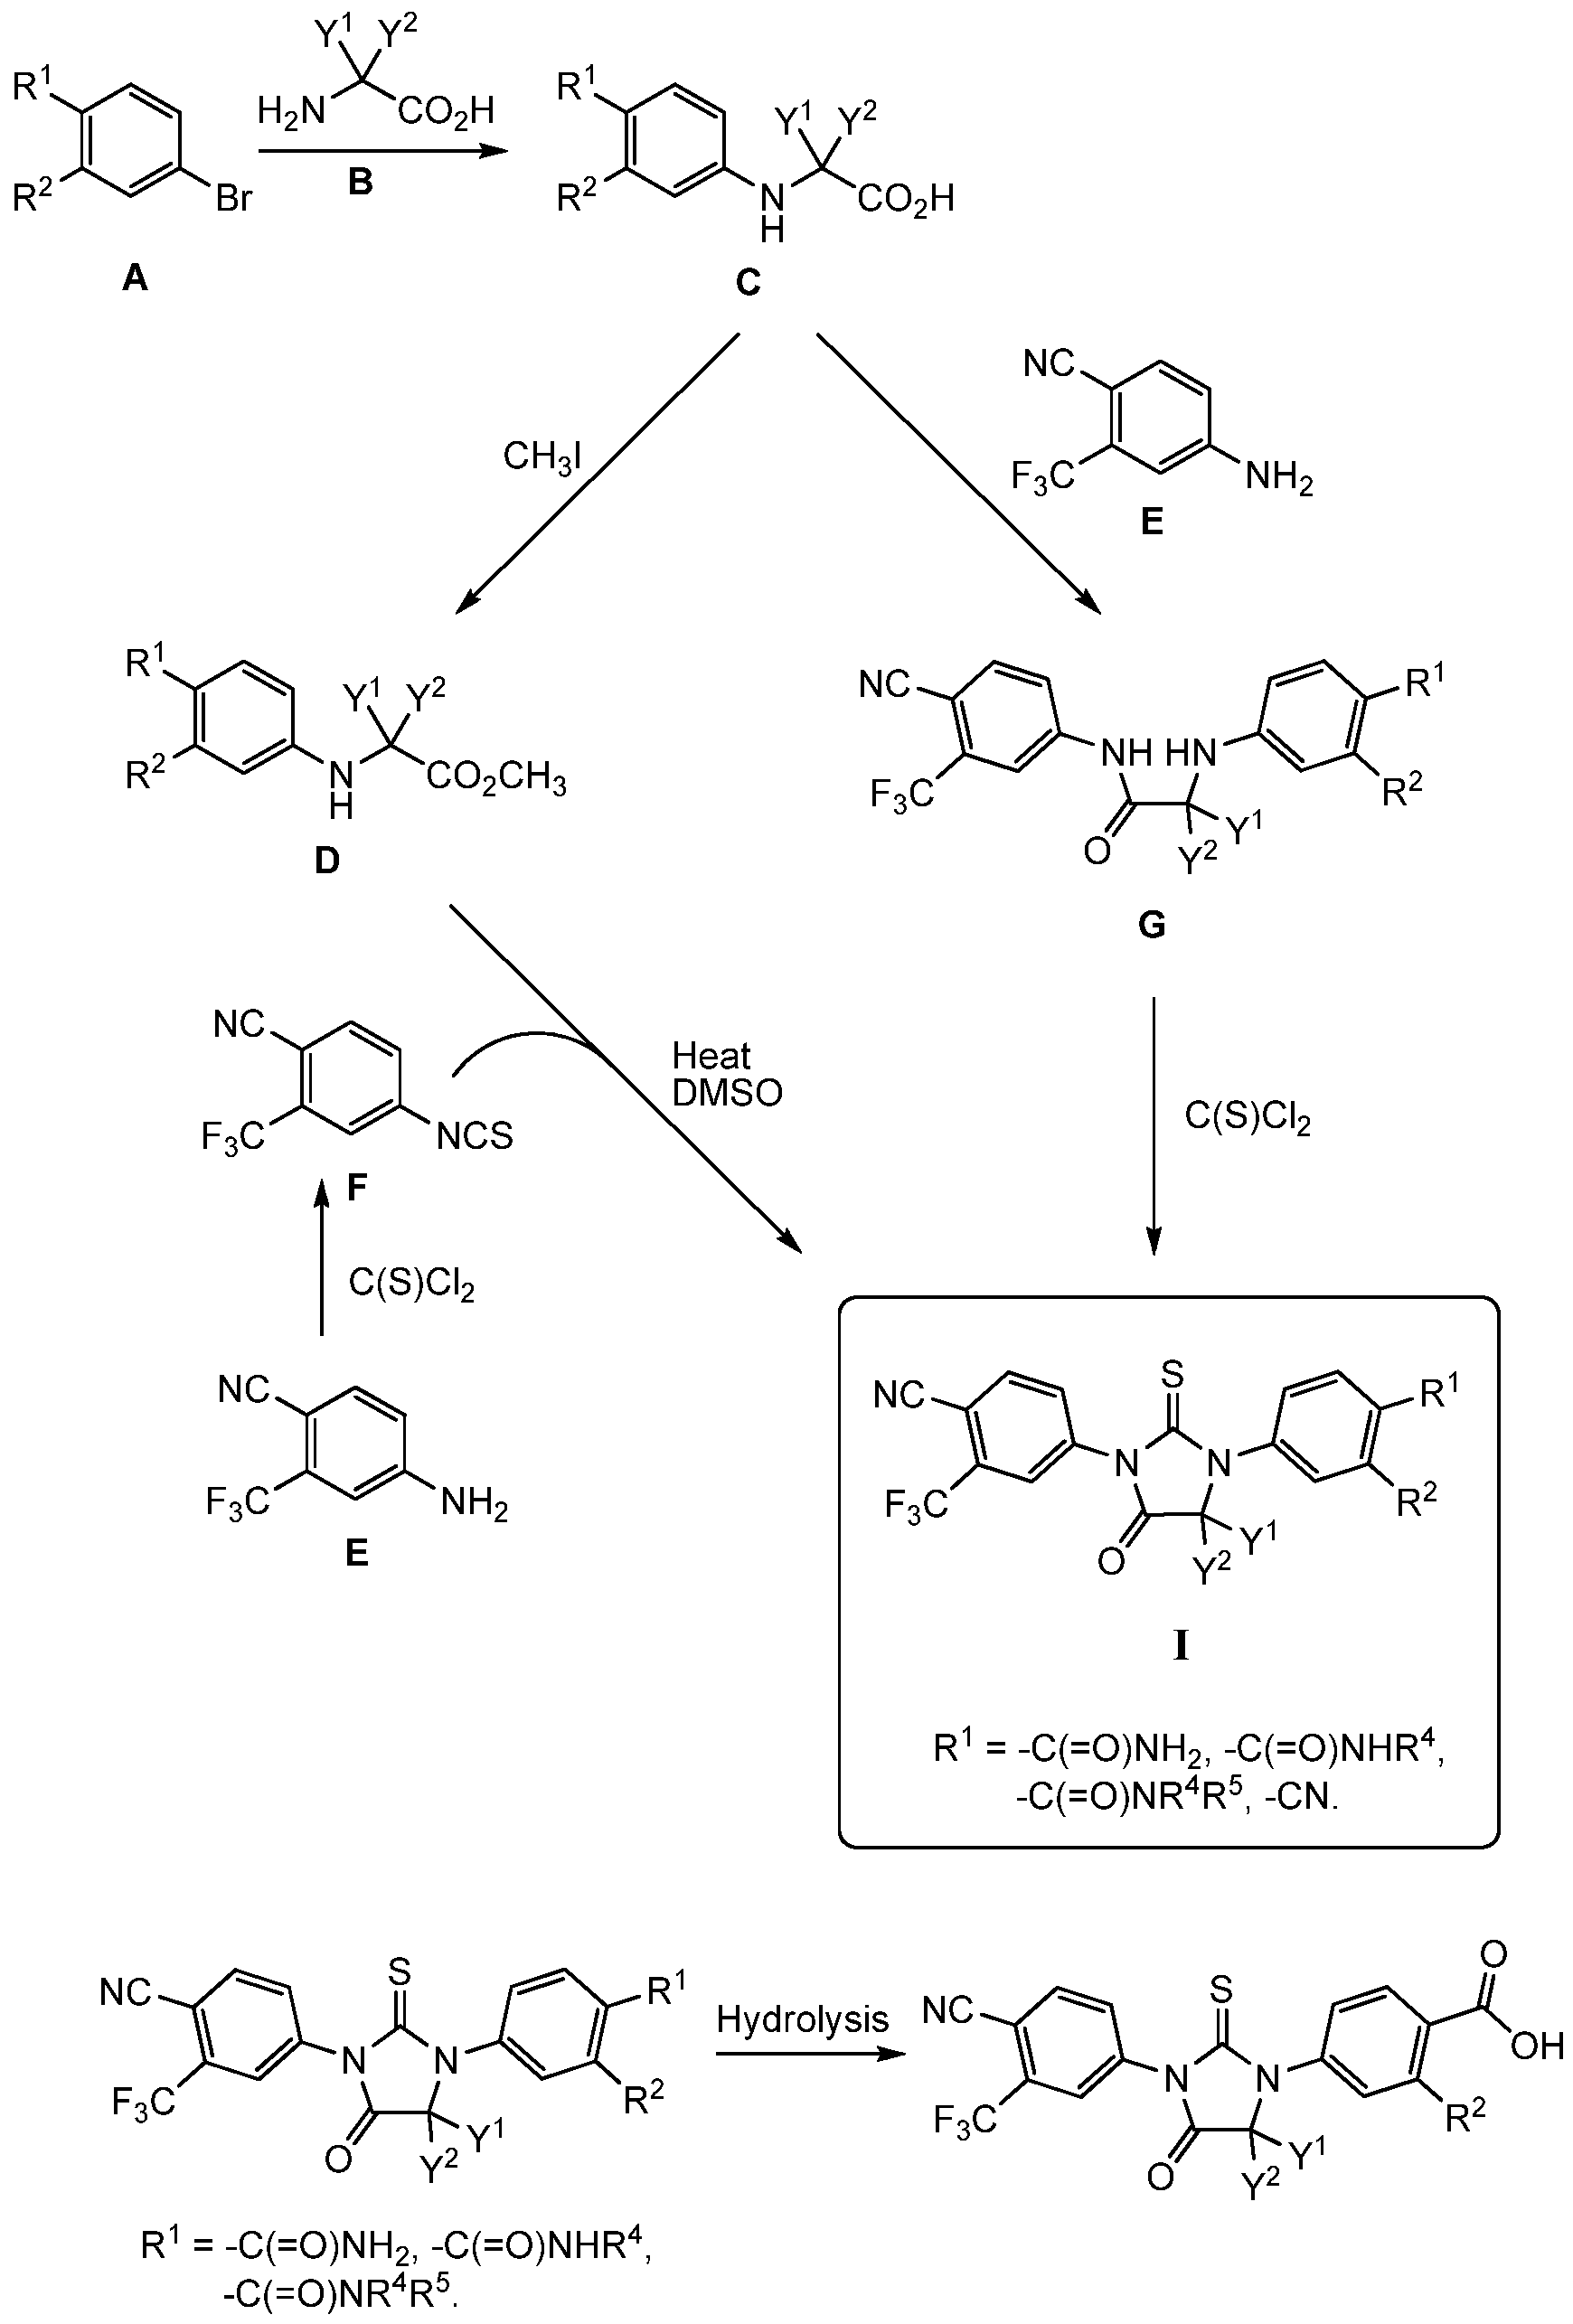 enamine reaction 2 acetylcyclohexanone Experiment 40 enamine reactions: 2-acetylcyclohexanone 331 (1) typically, carbonyl compounds are alkylated (equation 2) or acylated (equation 4.